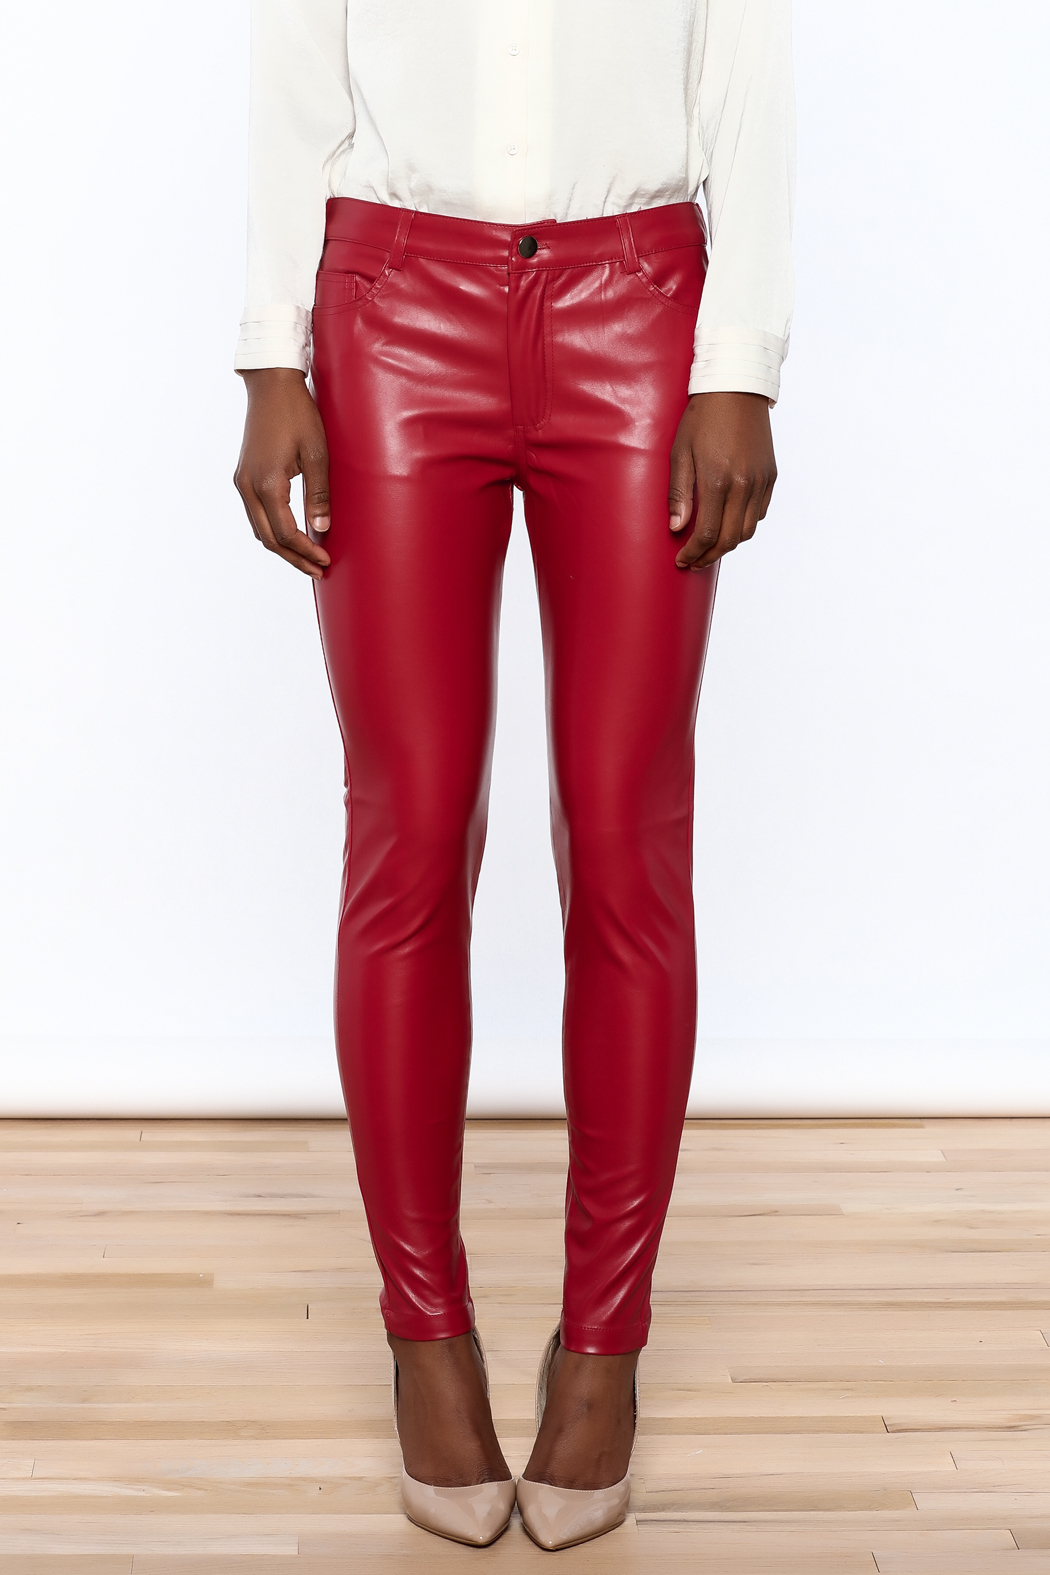 CALS Red Faux Leather Pants from California by YUNI — Shoptiques